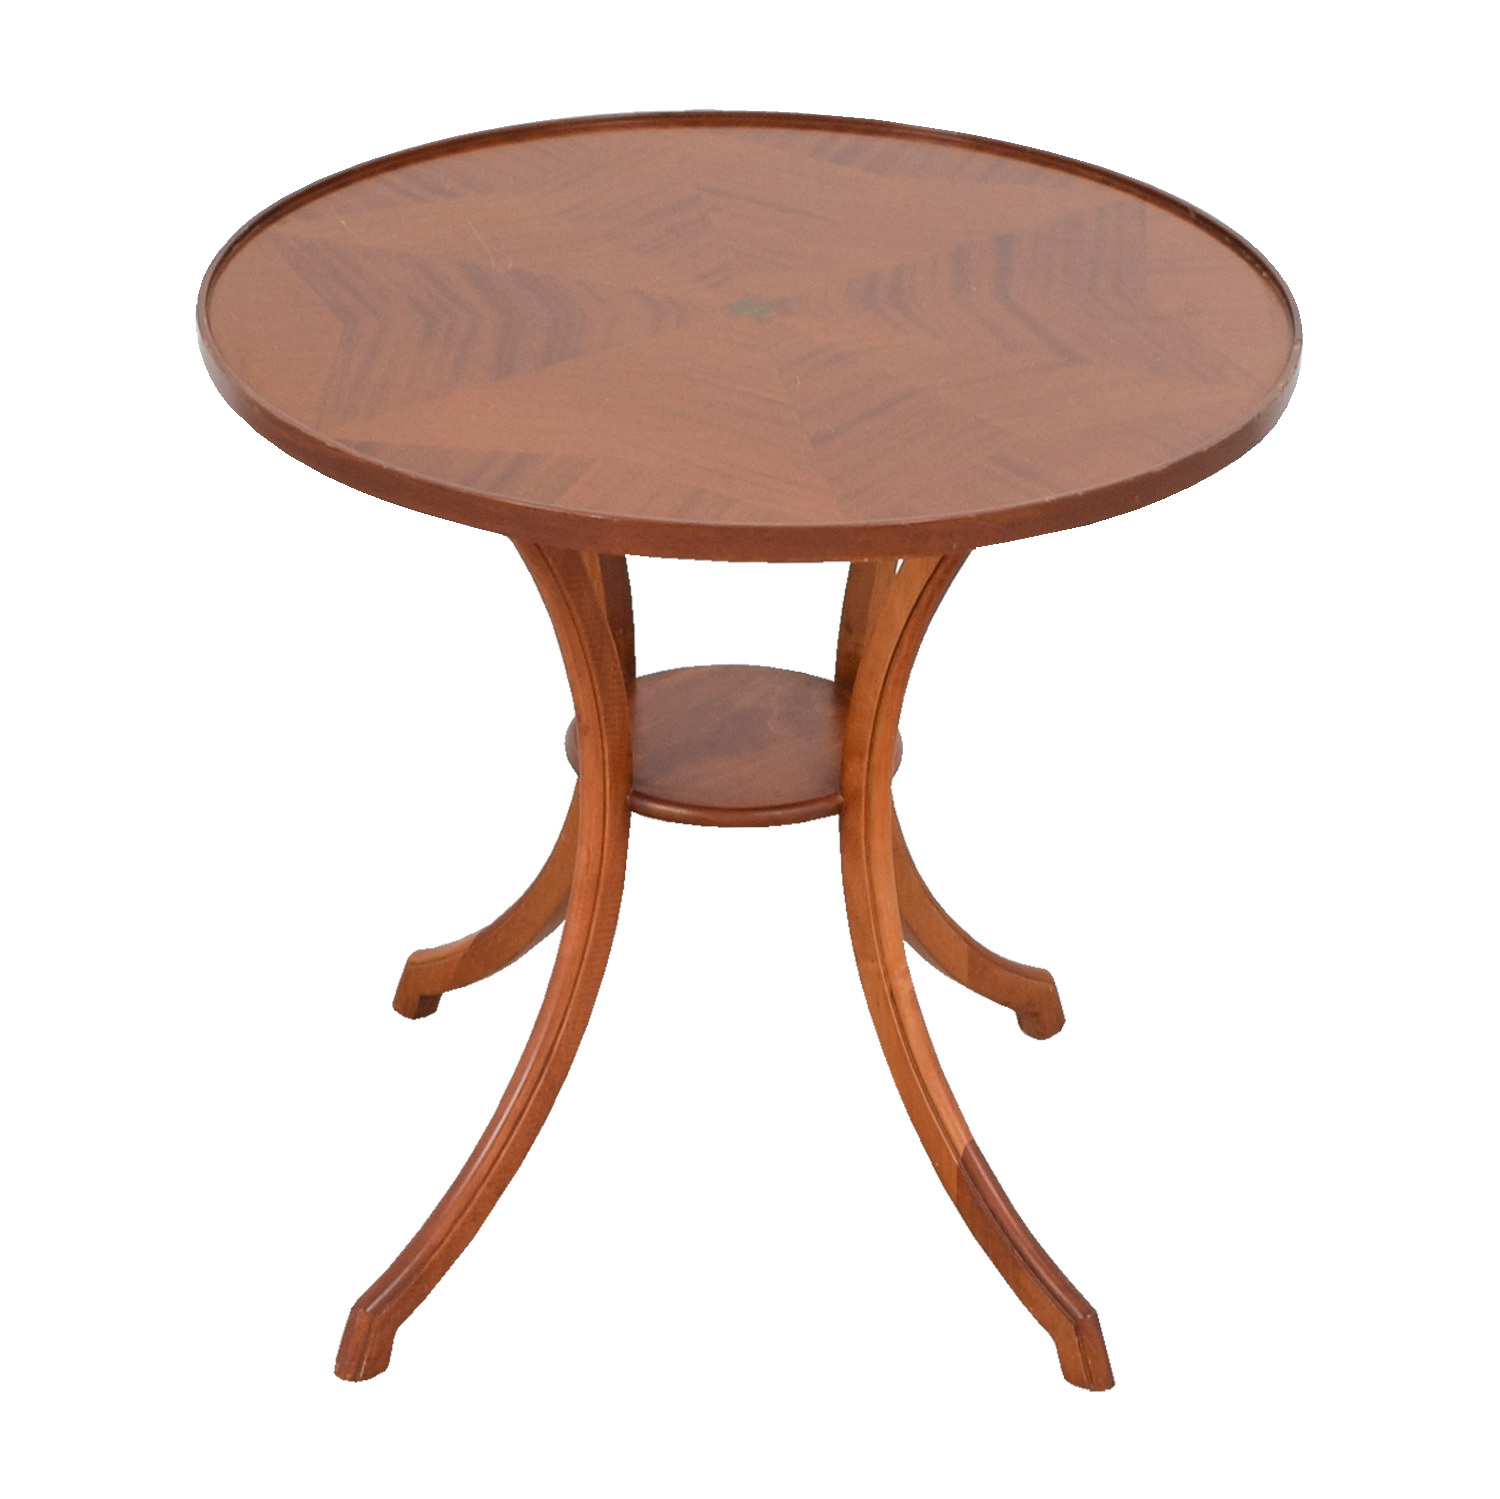 Round wooden accent table designer tables reference for Circular wooden table